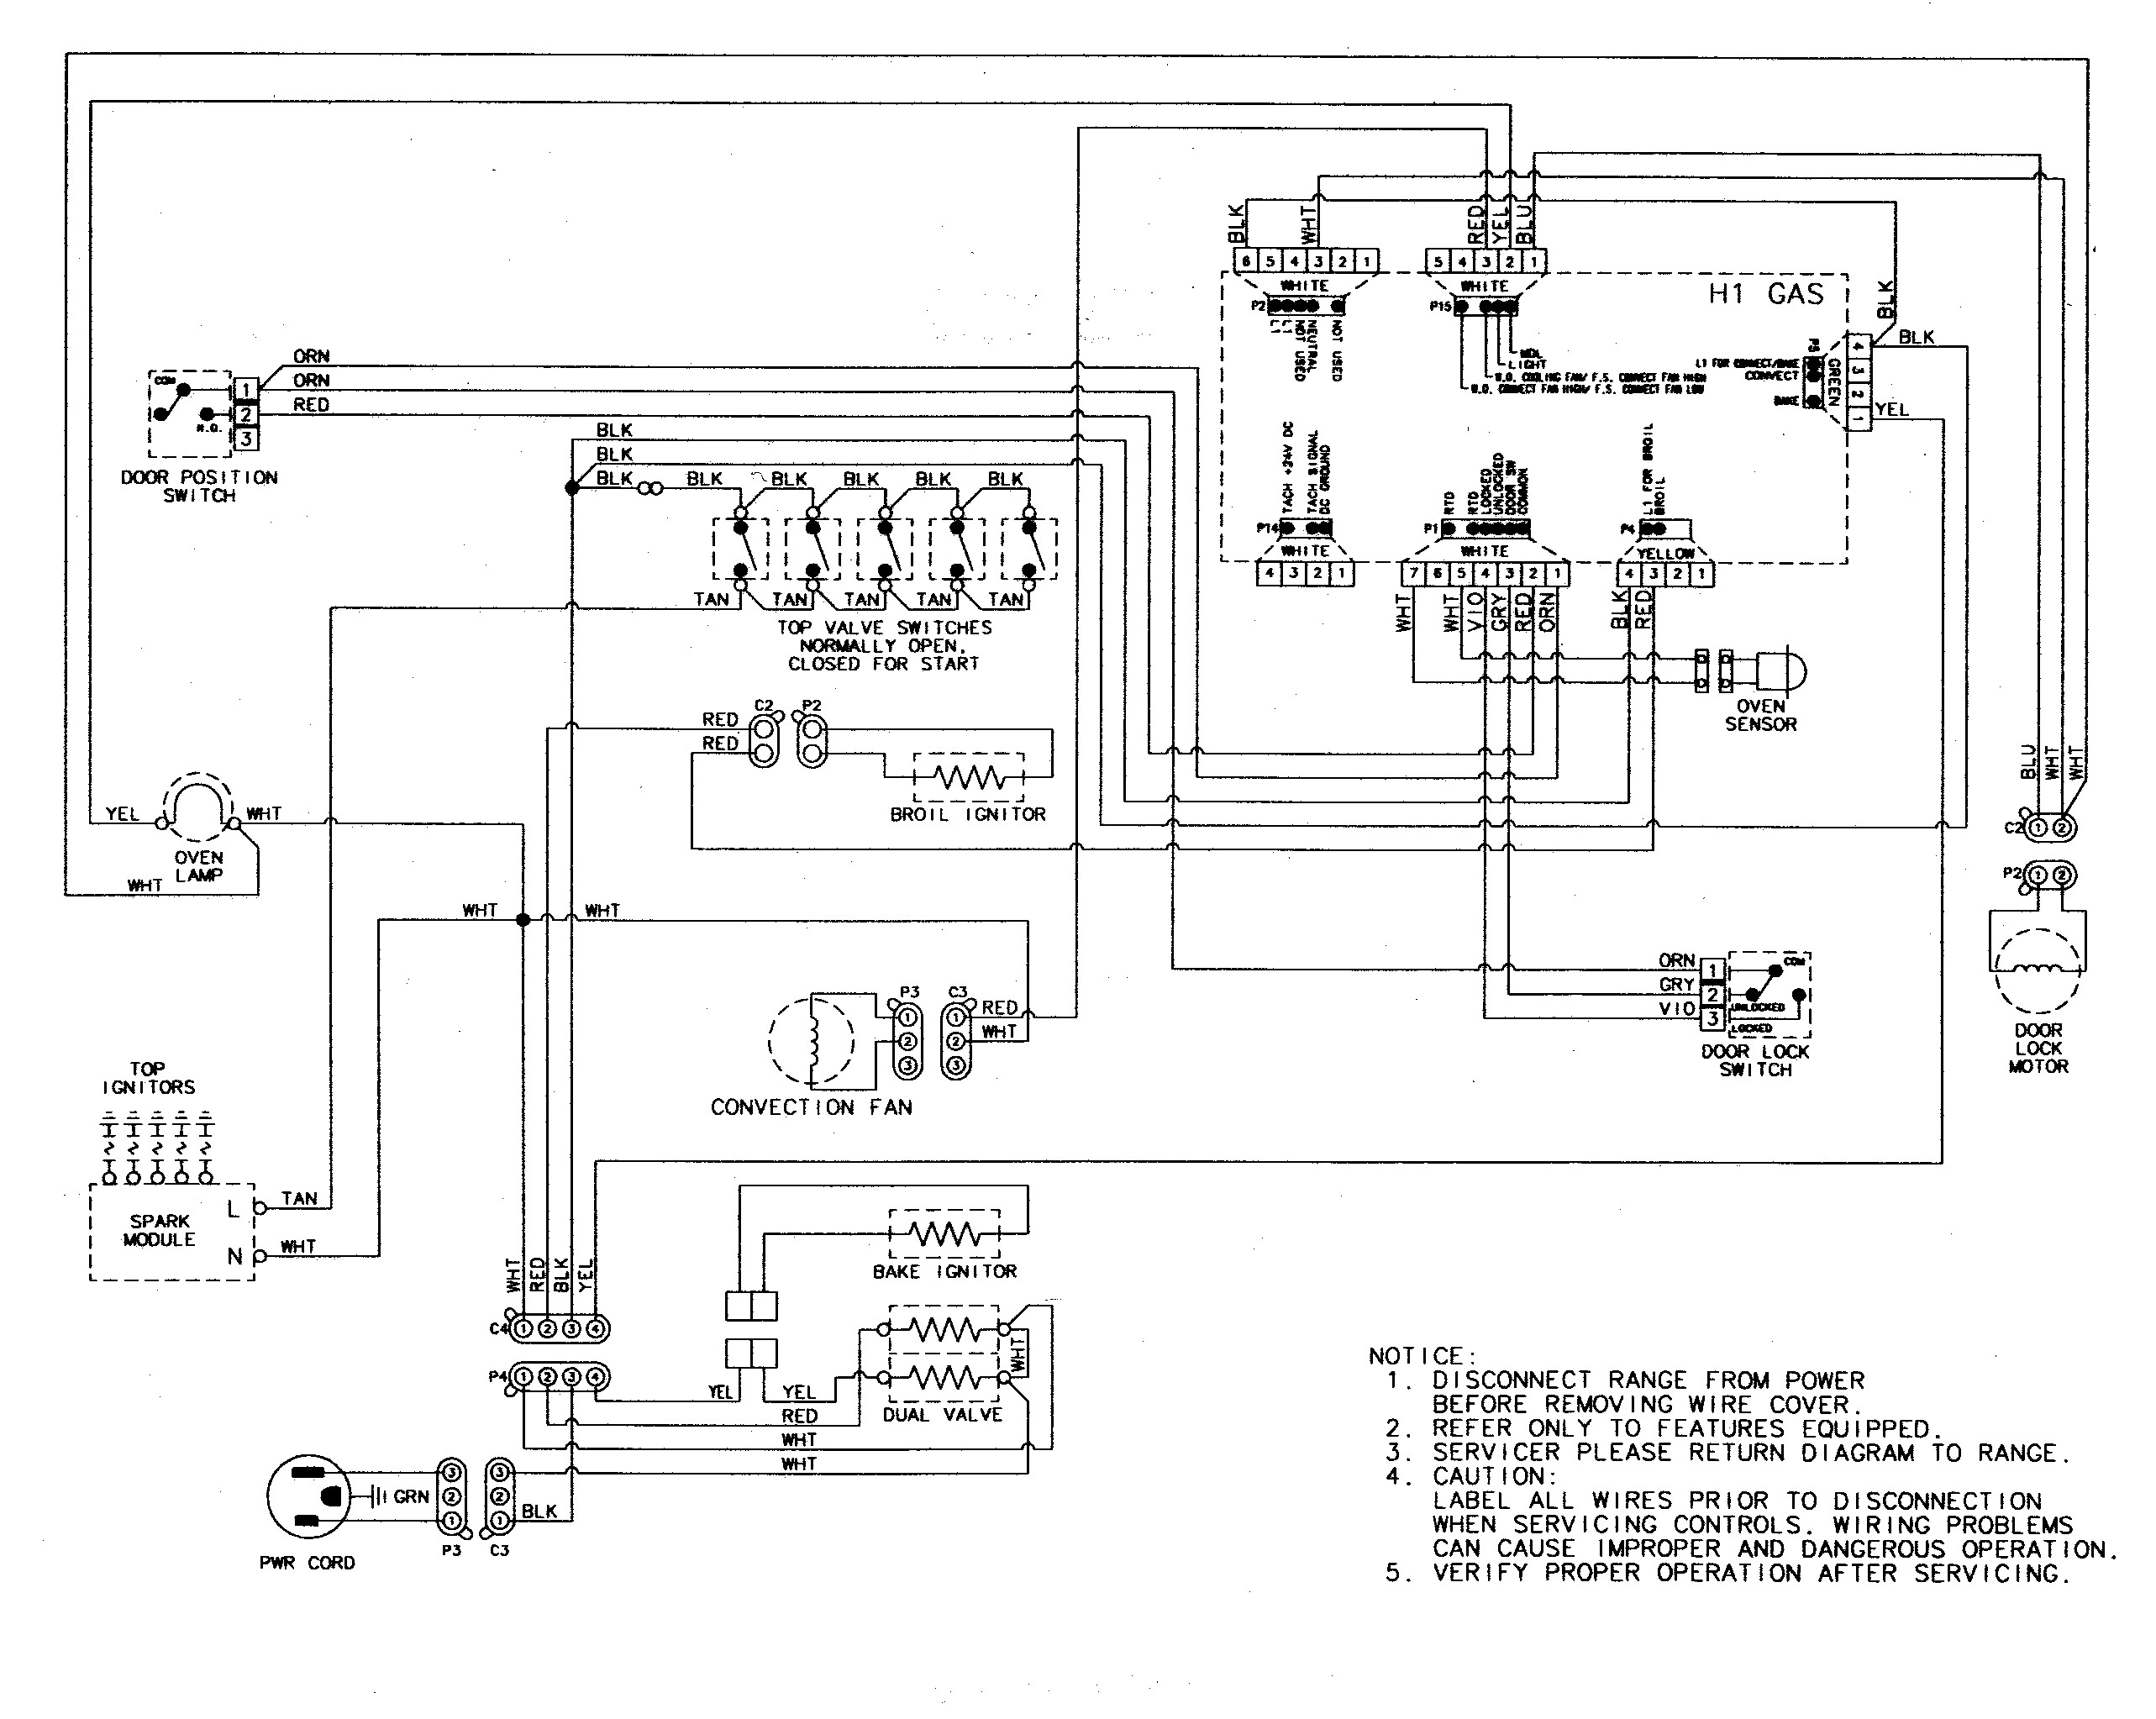 ge stove wiring diagram Collection-Wiring Diagram Ge Dryer Valid Wiring Diagram Whirlpool Gas Dryer Schematic for Simple Electric 6-j